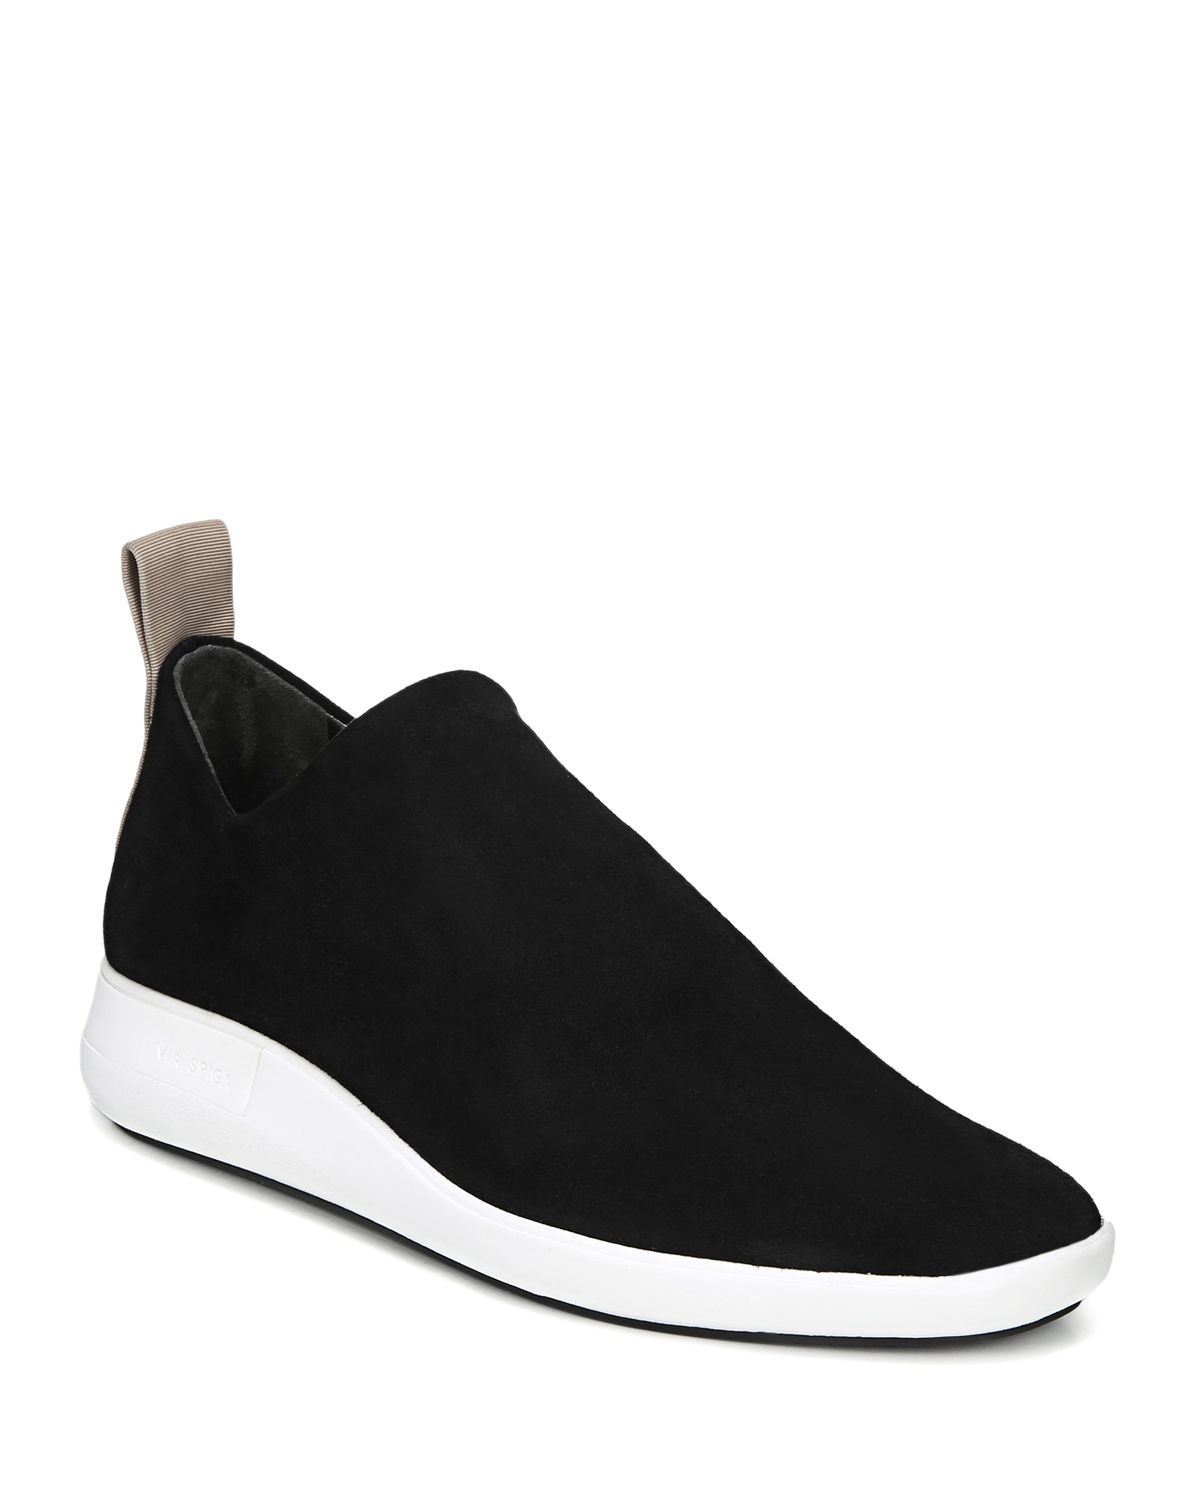 Via Spiga Women's Marlow Slip-On Sneakers